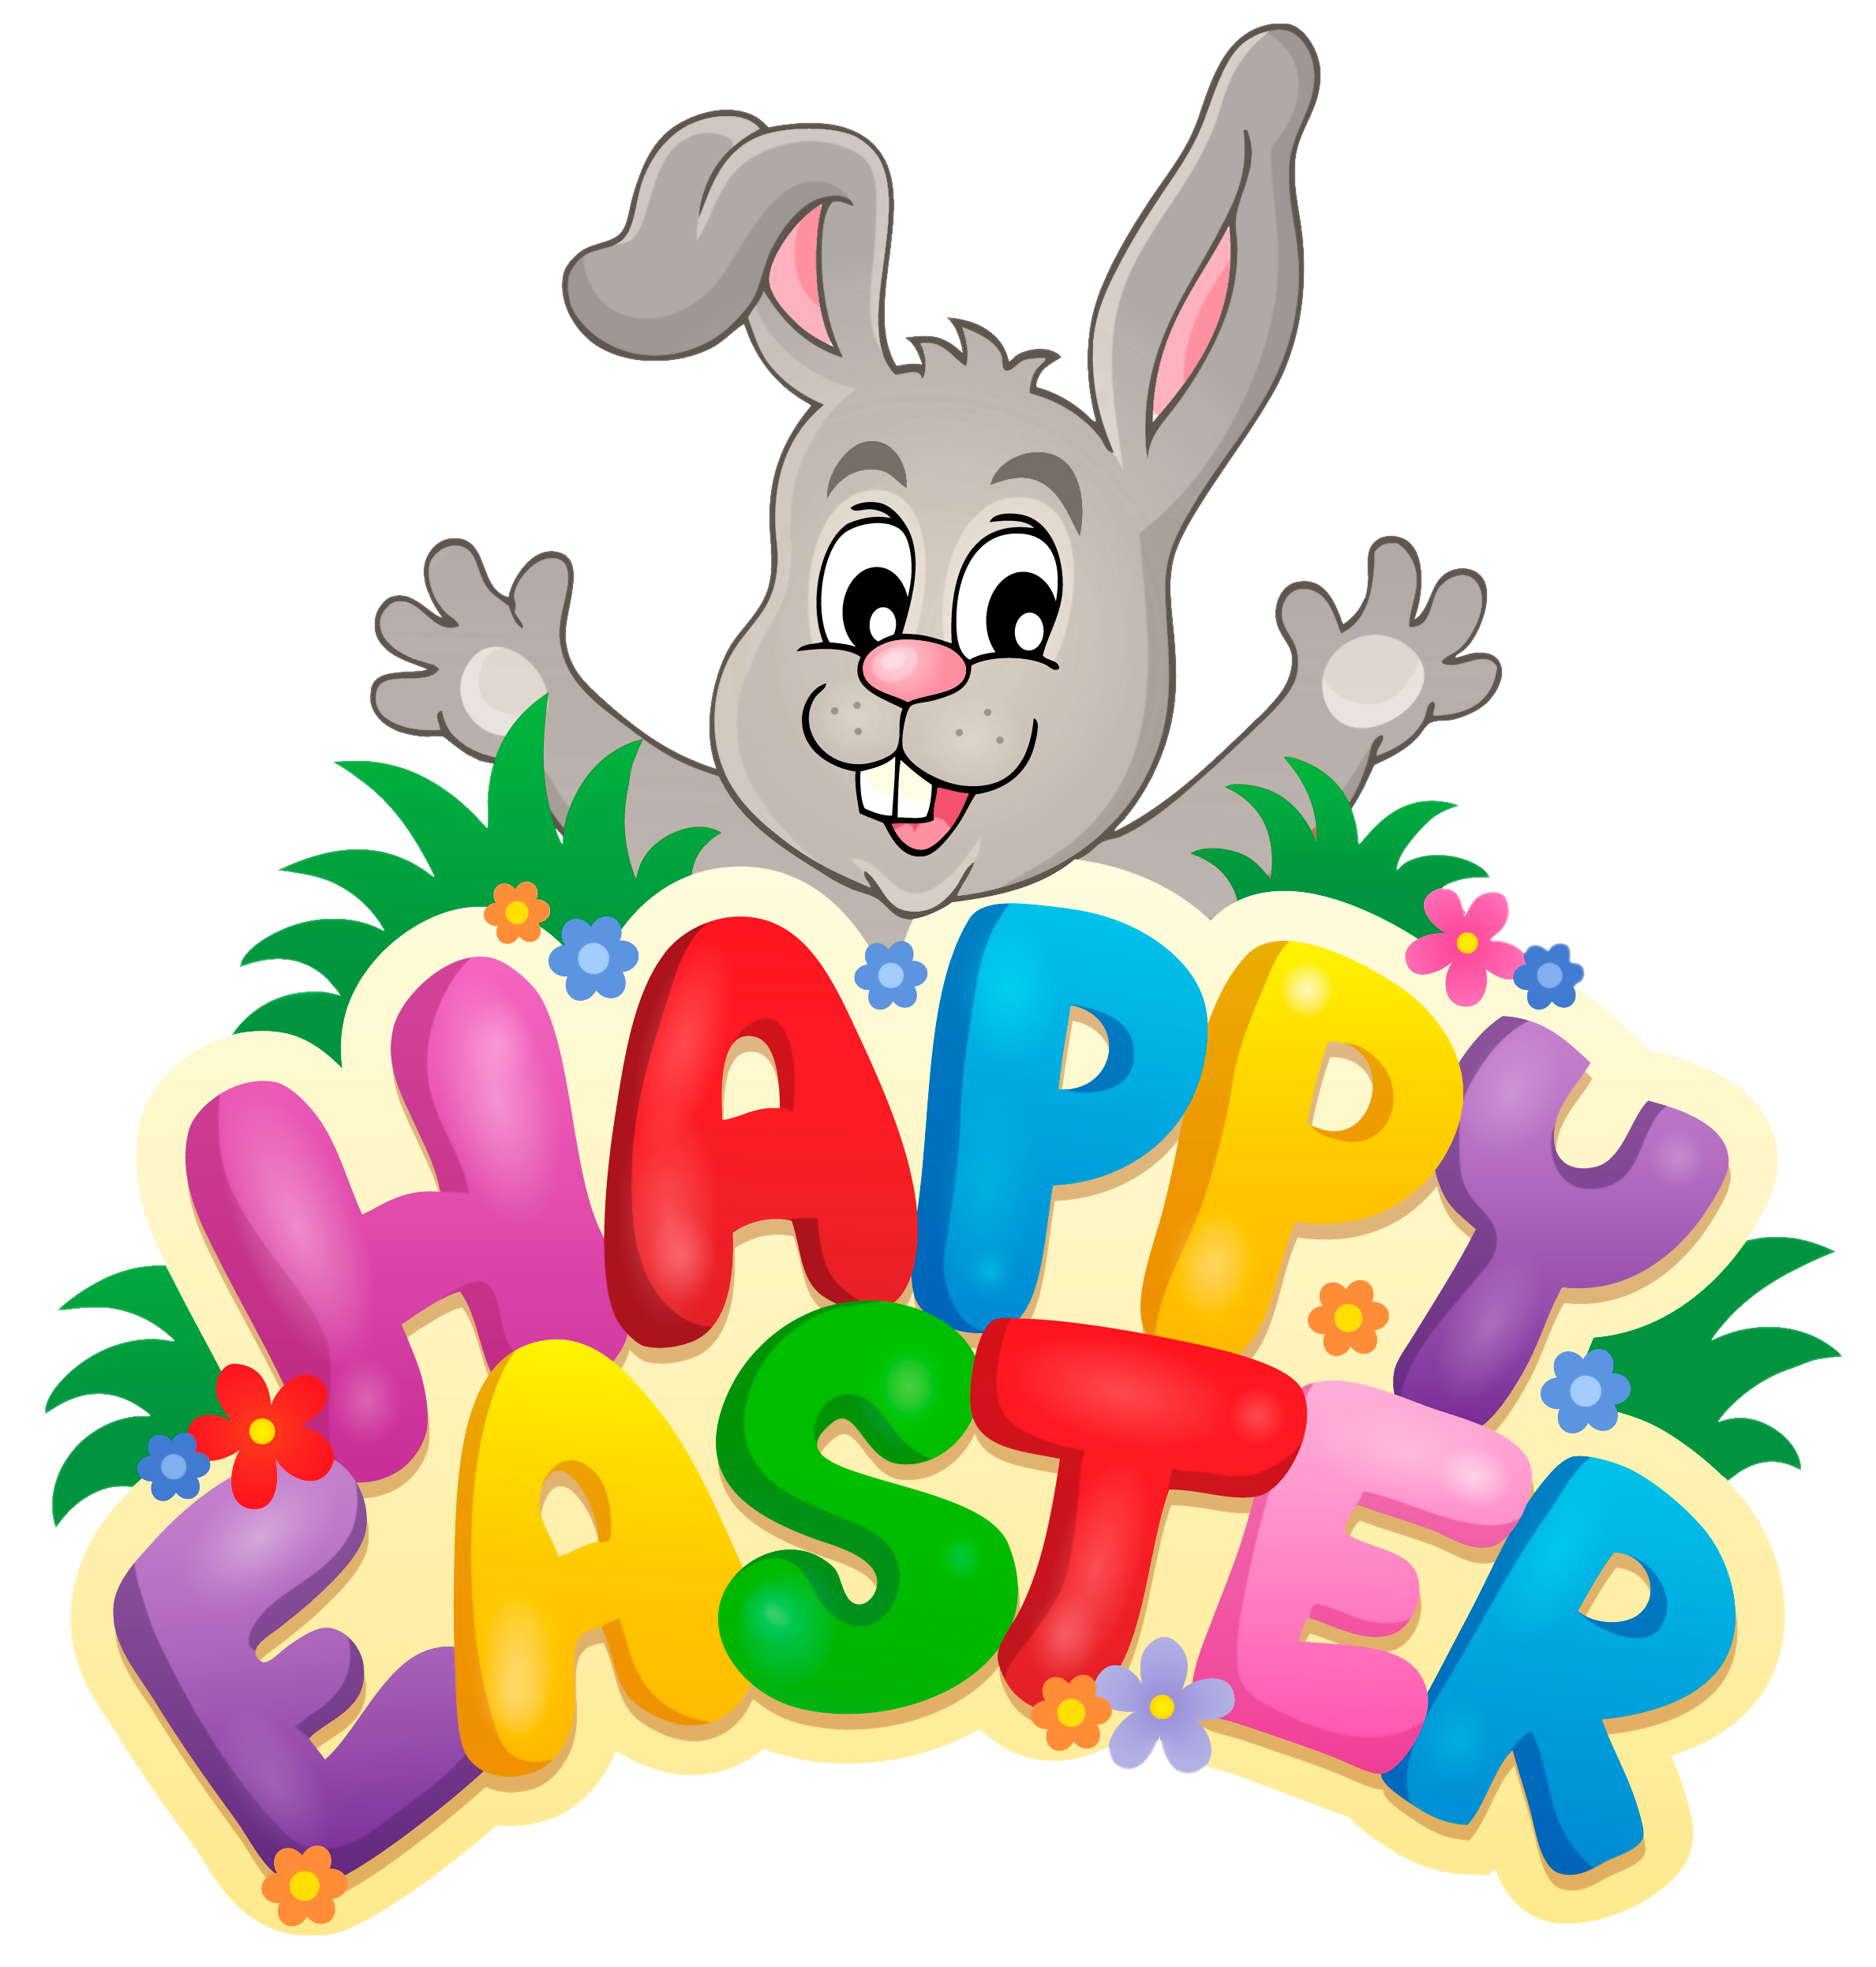 Transparent Happy Easter With-Transparent happy easter with-8